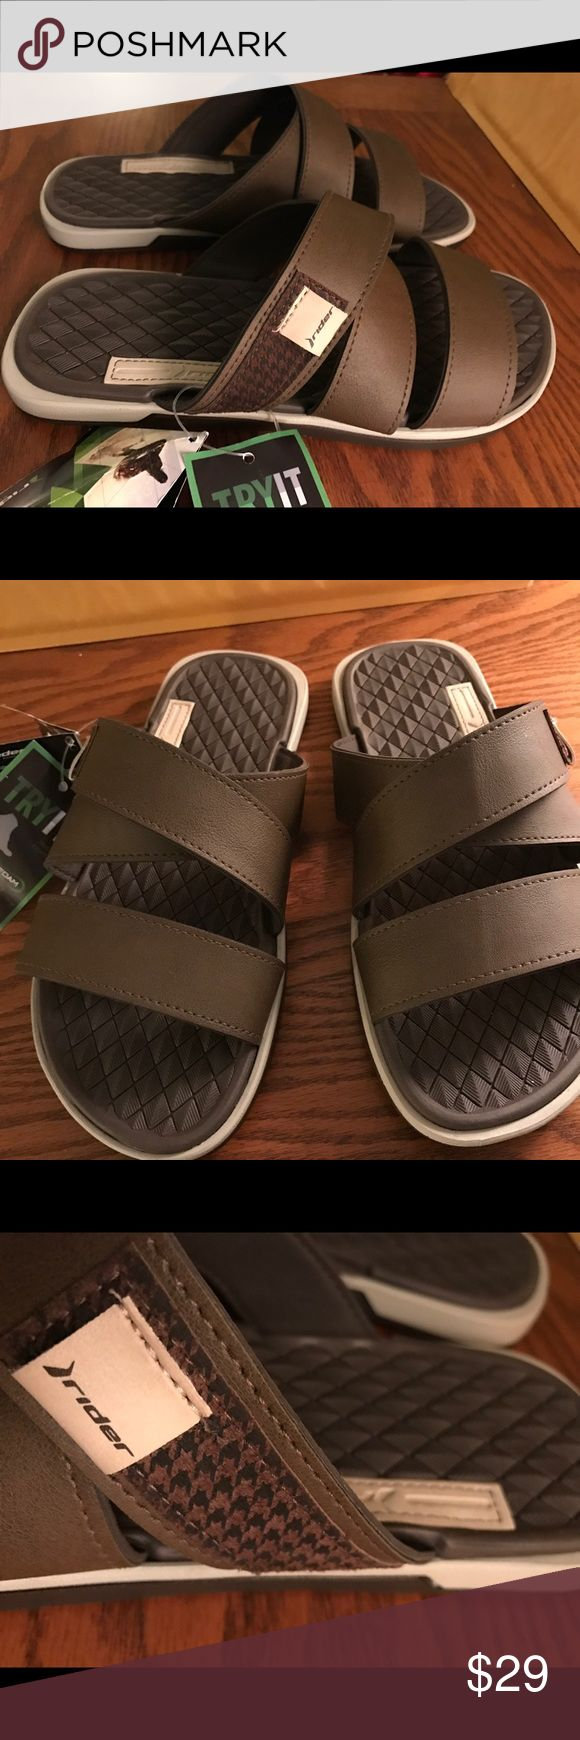 """Rider Slip On Sandals Flip Flops Size 10 Riders are Brazilian shoes and made to Eco friendly standards. They will mot soak up water and """"squish"""" and all materials are recyclable. Choose Valencia Blue or Brown. Size 10 Men's. Rider Shoes Sandals & Flip-Flops"""